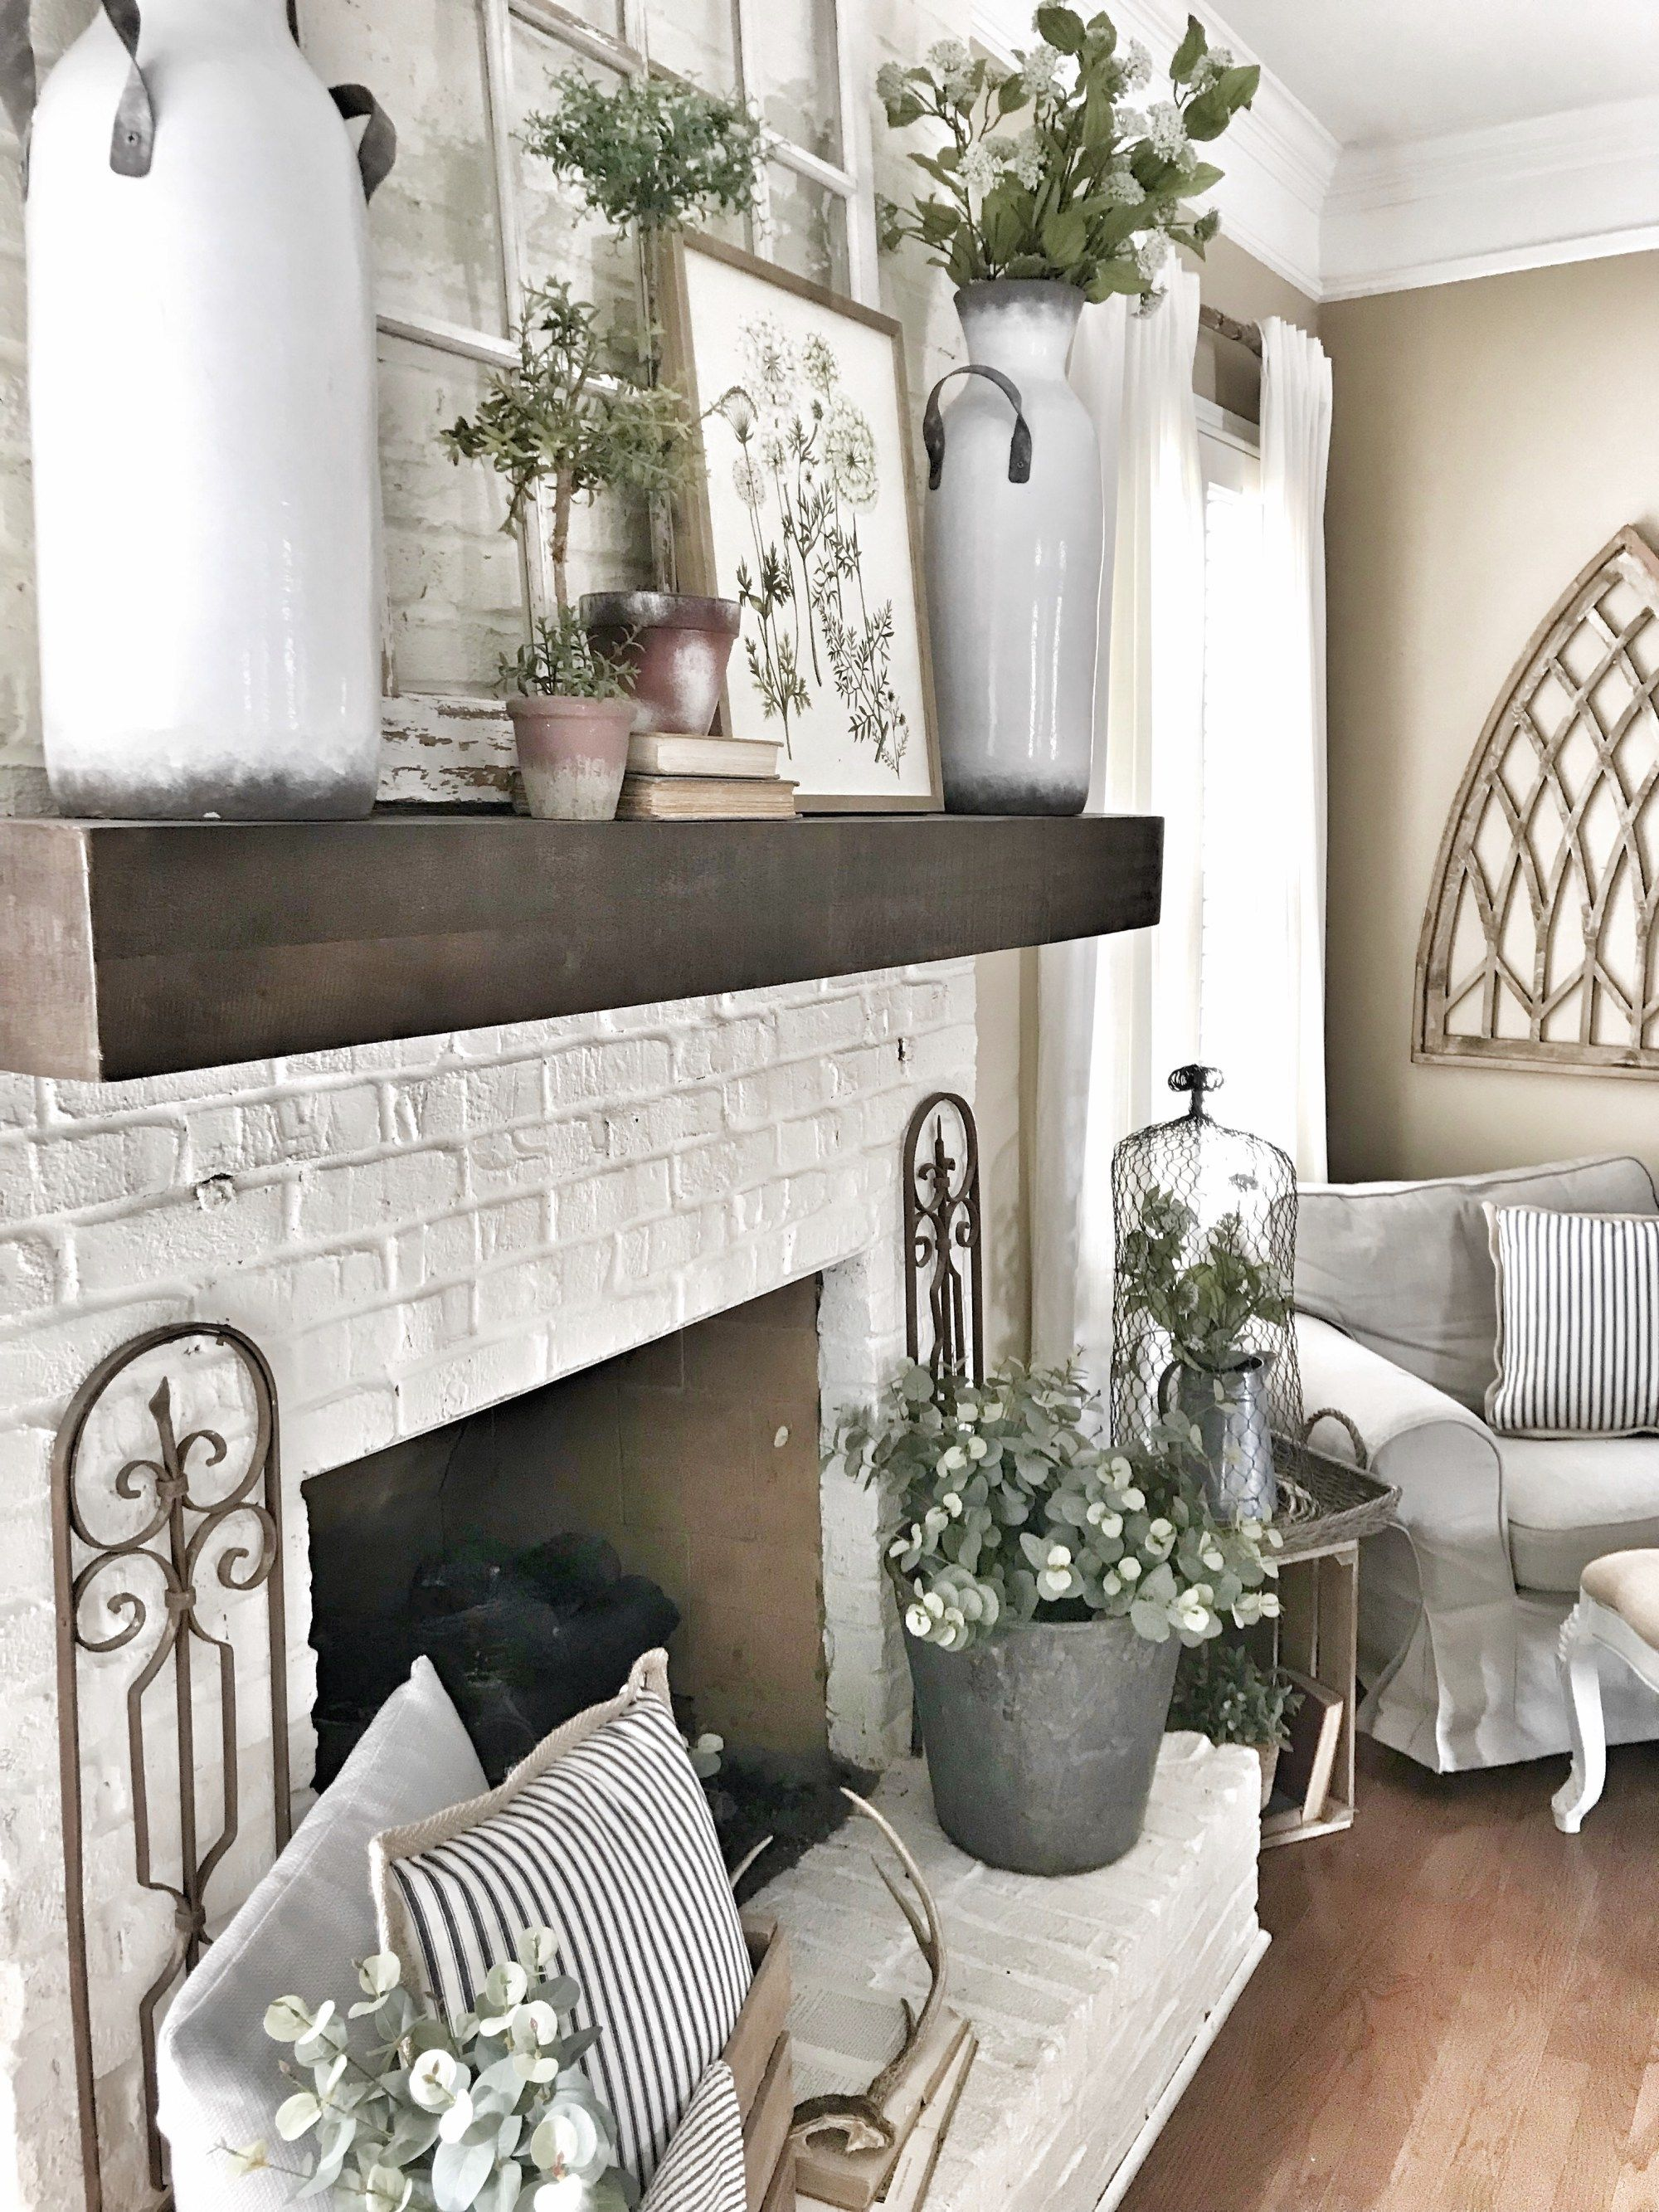 My Pottery Barn Shelf Mantel Hack Farmhouse Decor Living Room